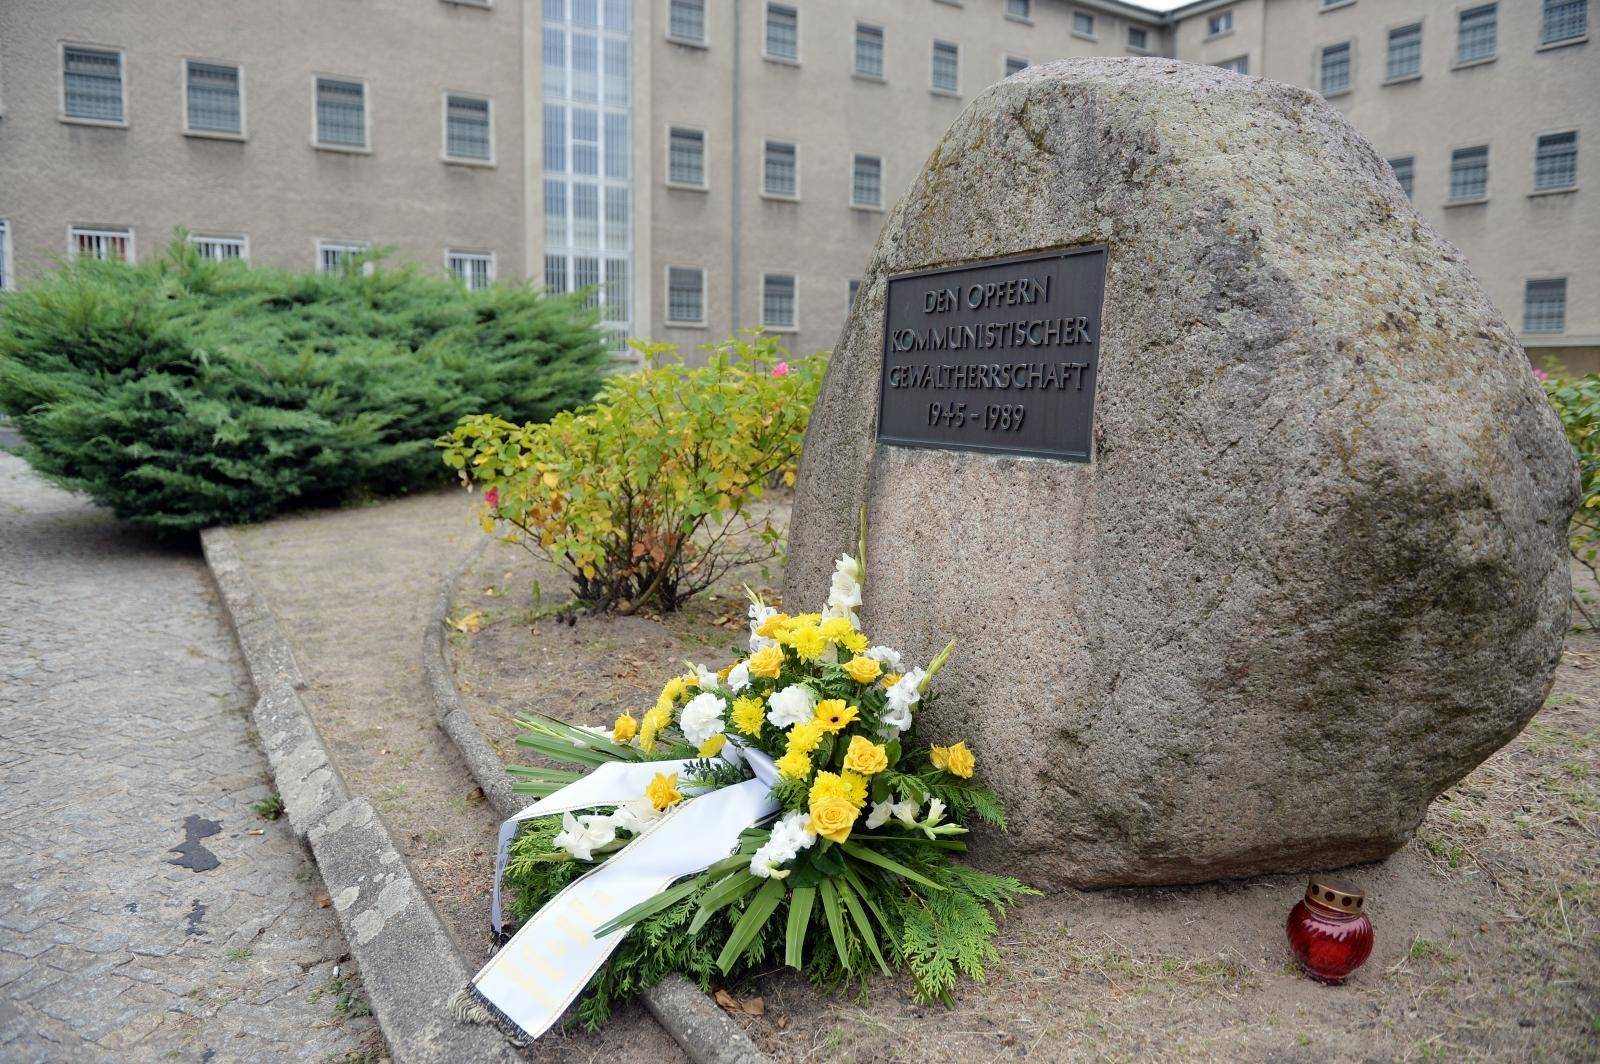 Berlin-Hohenschoenhausen memorial site